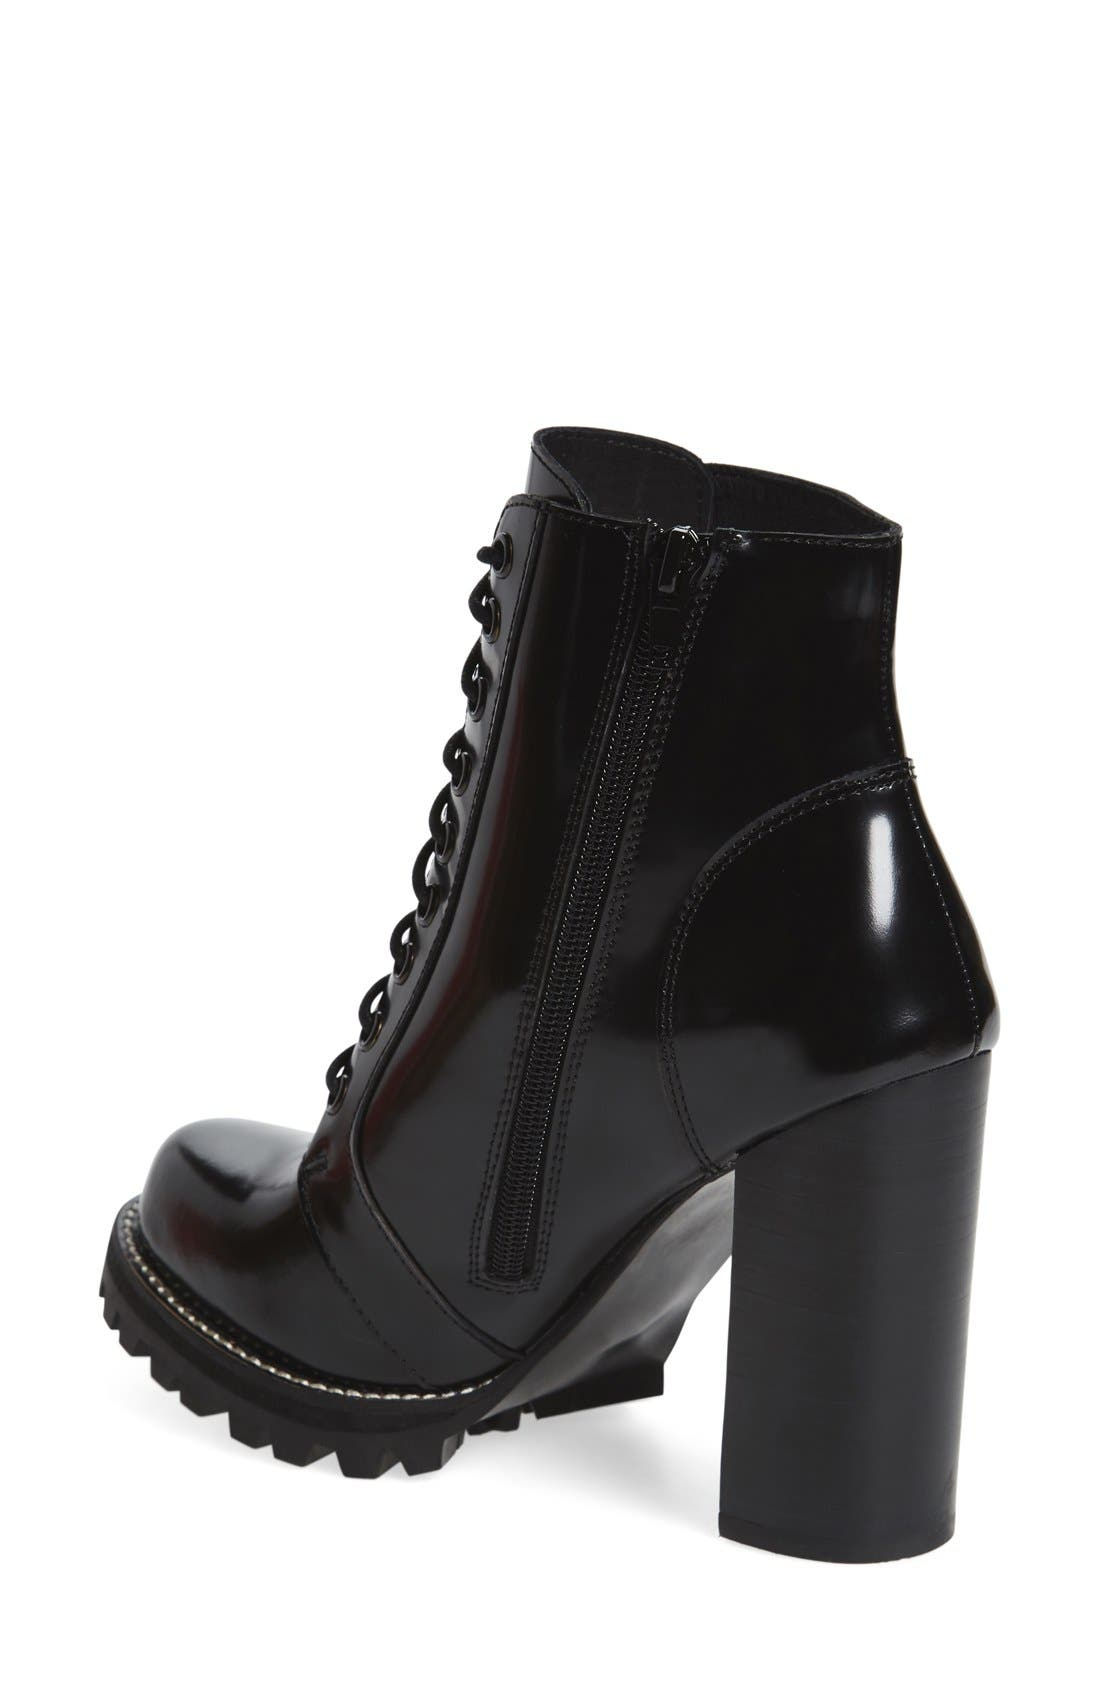 JEFFREY CAMPBELL, 'Legion' High Heel Boot, Alternate thumbnail 3, color, BLACK BOX LEATHER